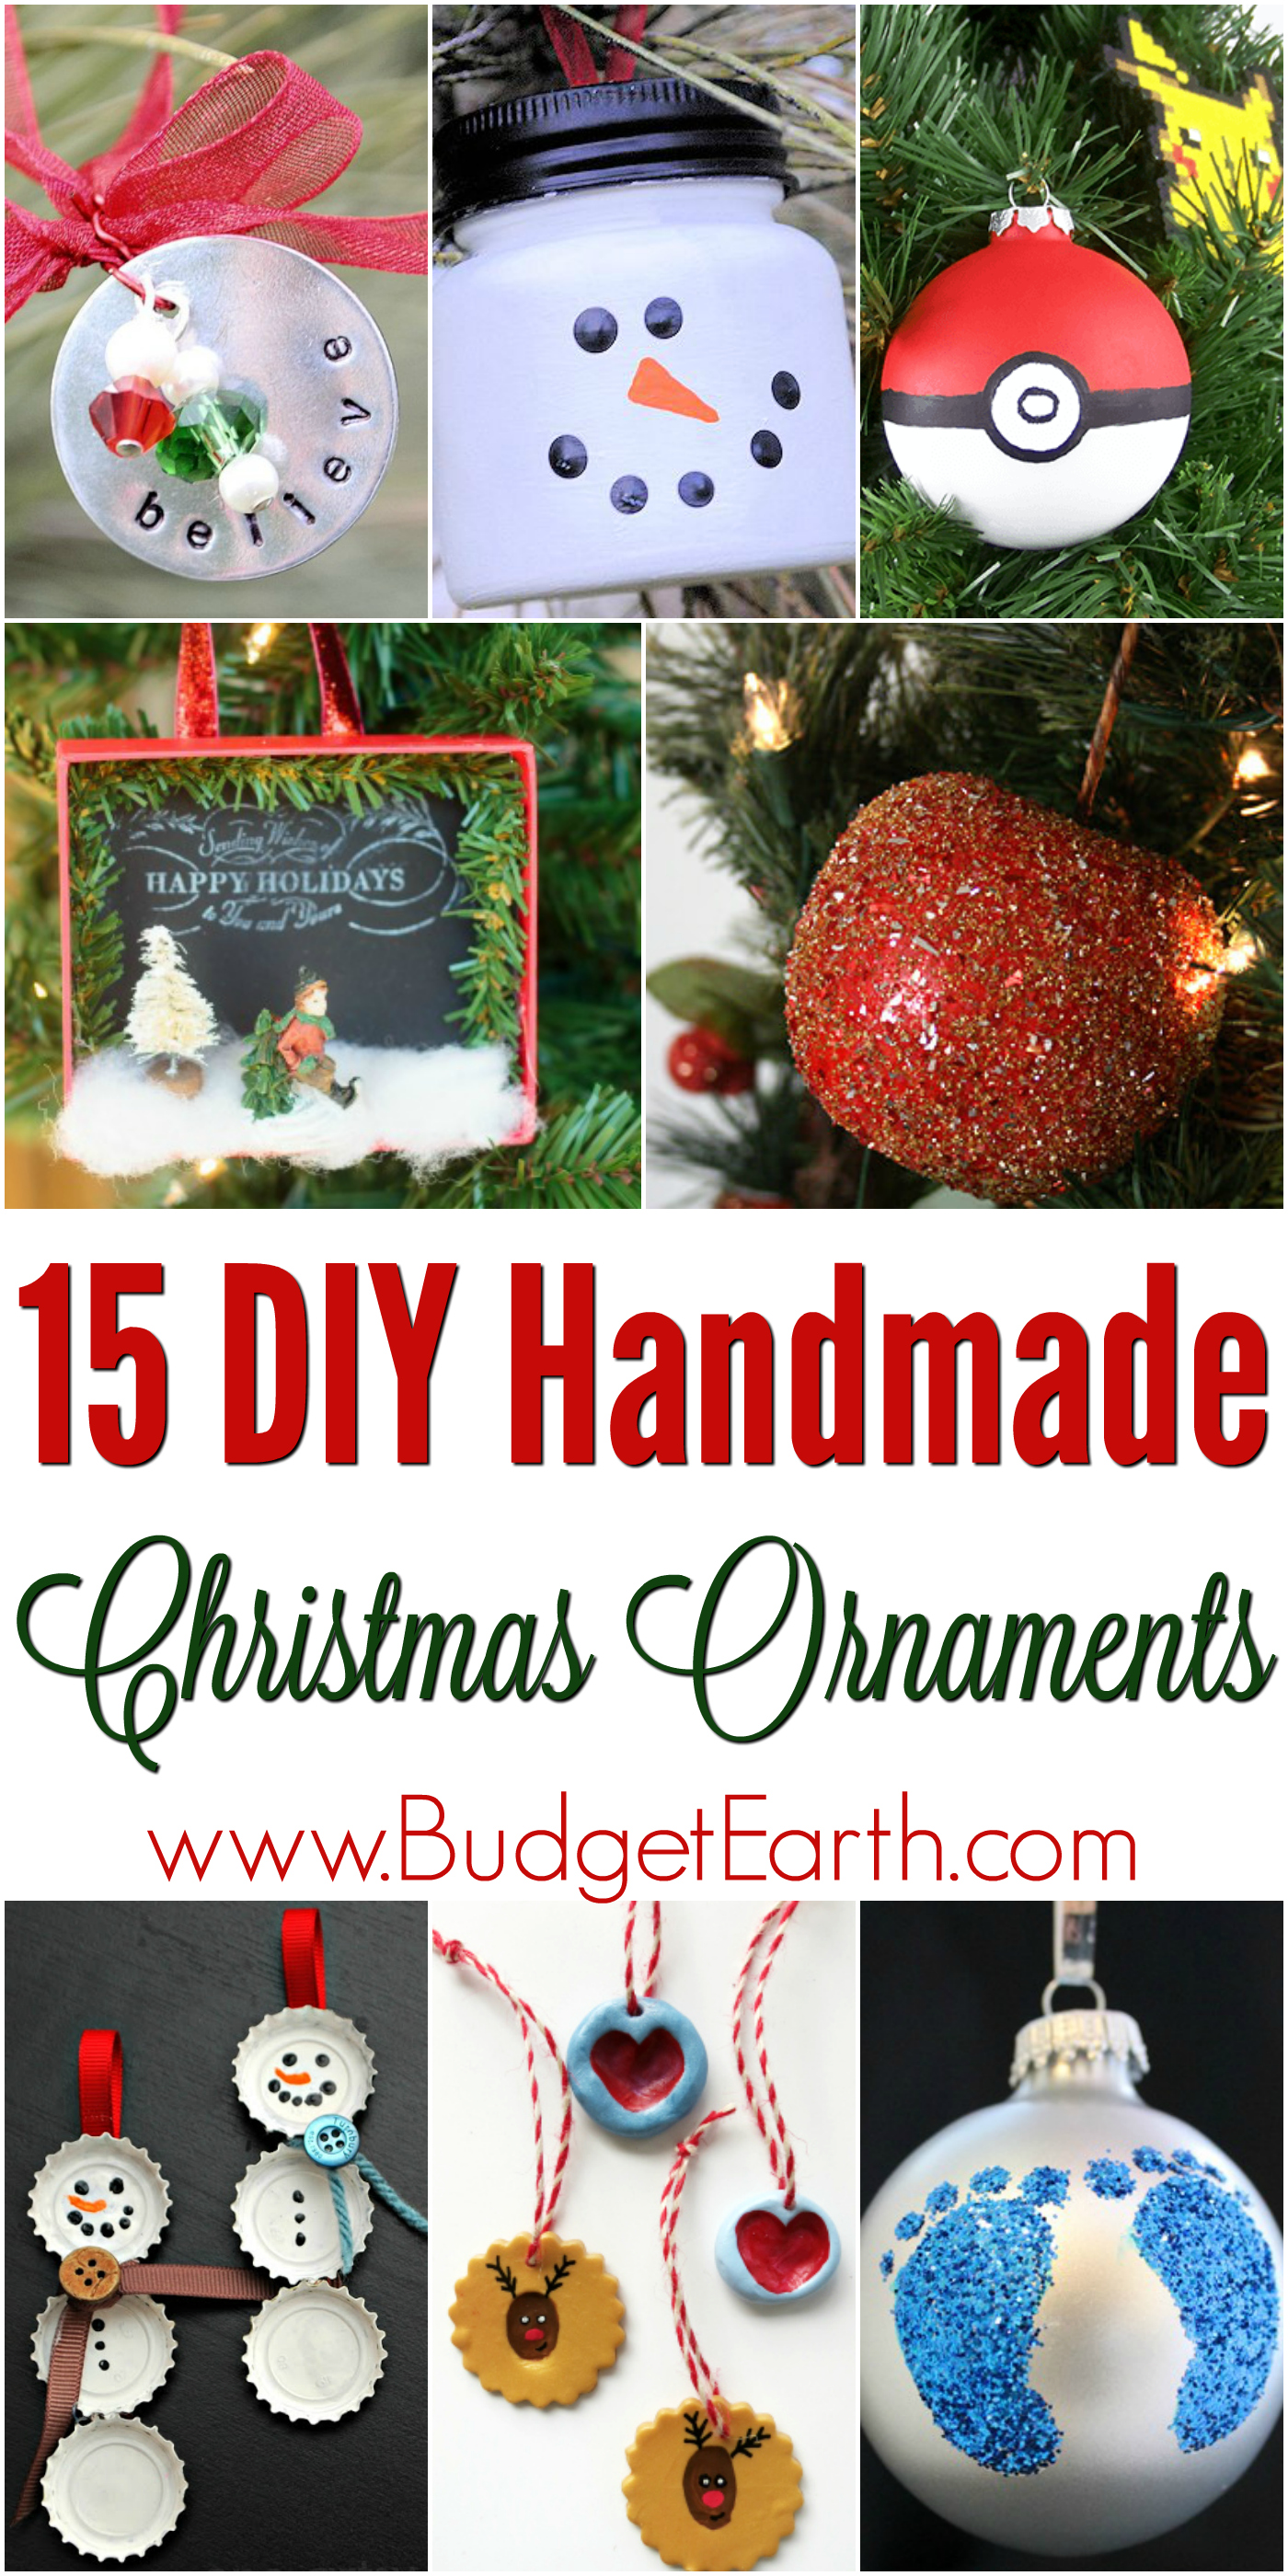 Looking for some adorable ornaments to make yourself or with your family? Check out these 15 DIY Handmade Christmas Ornaments here!